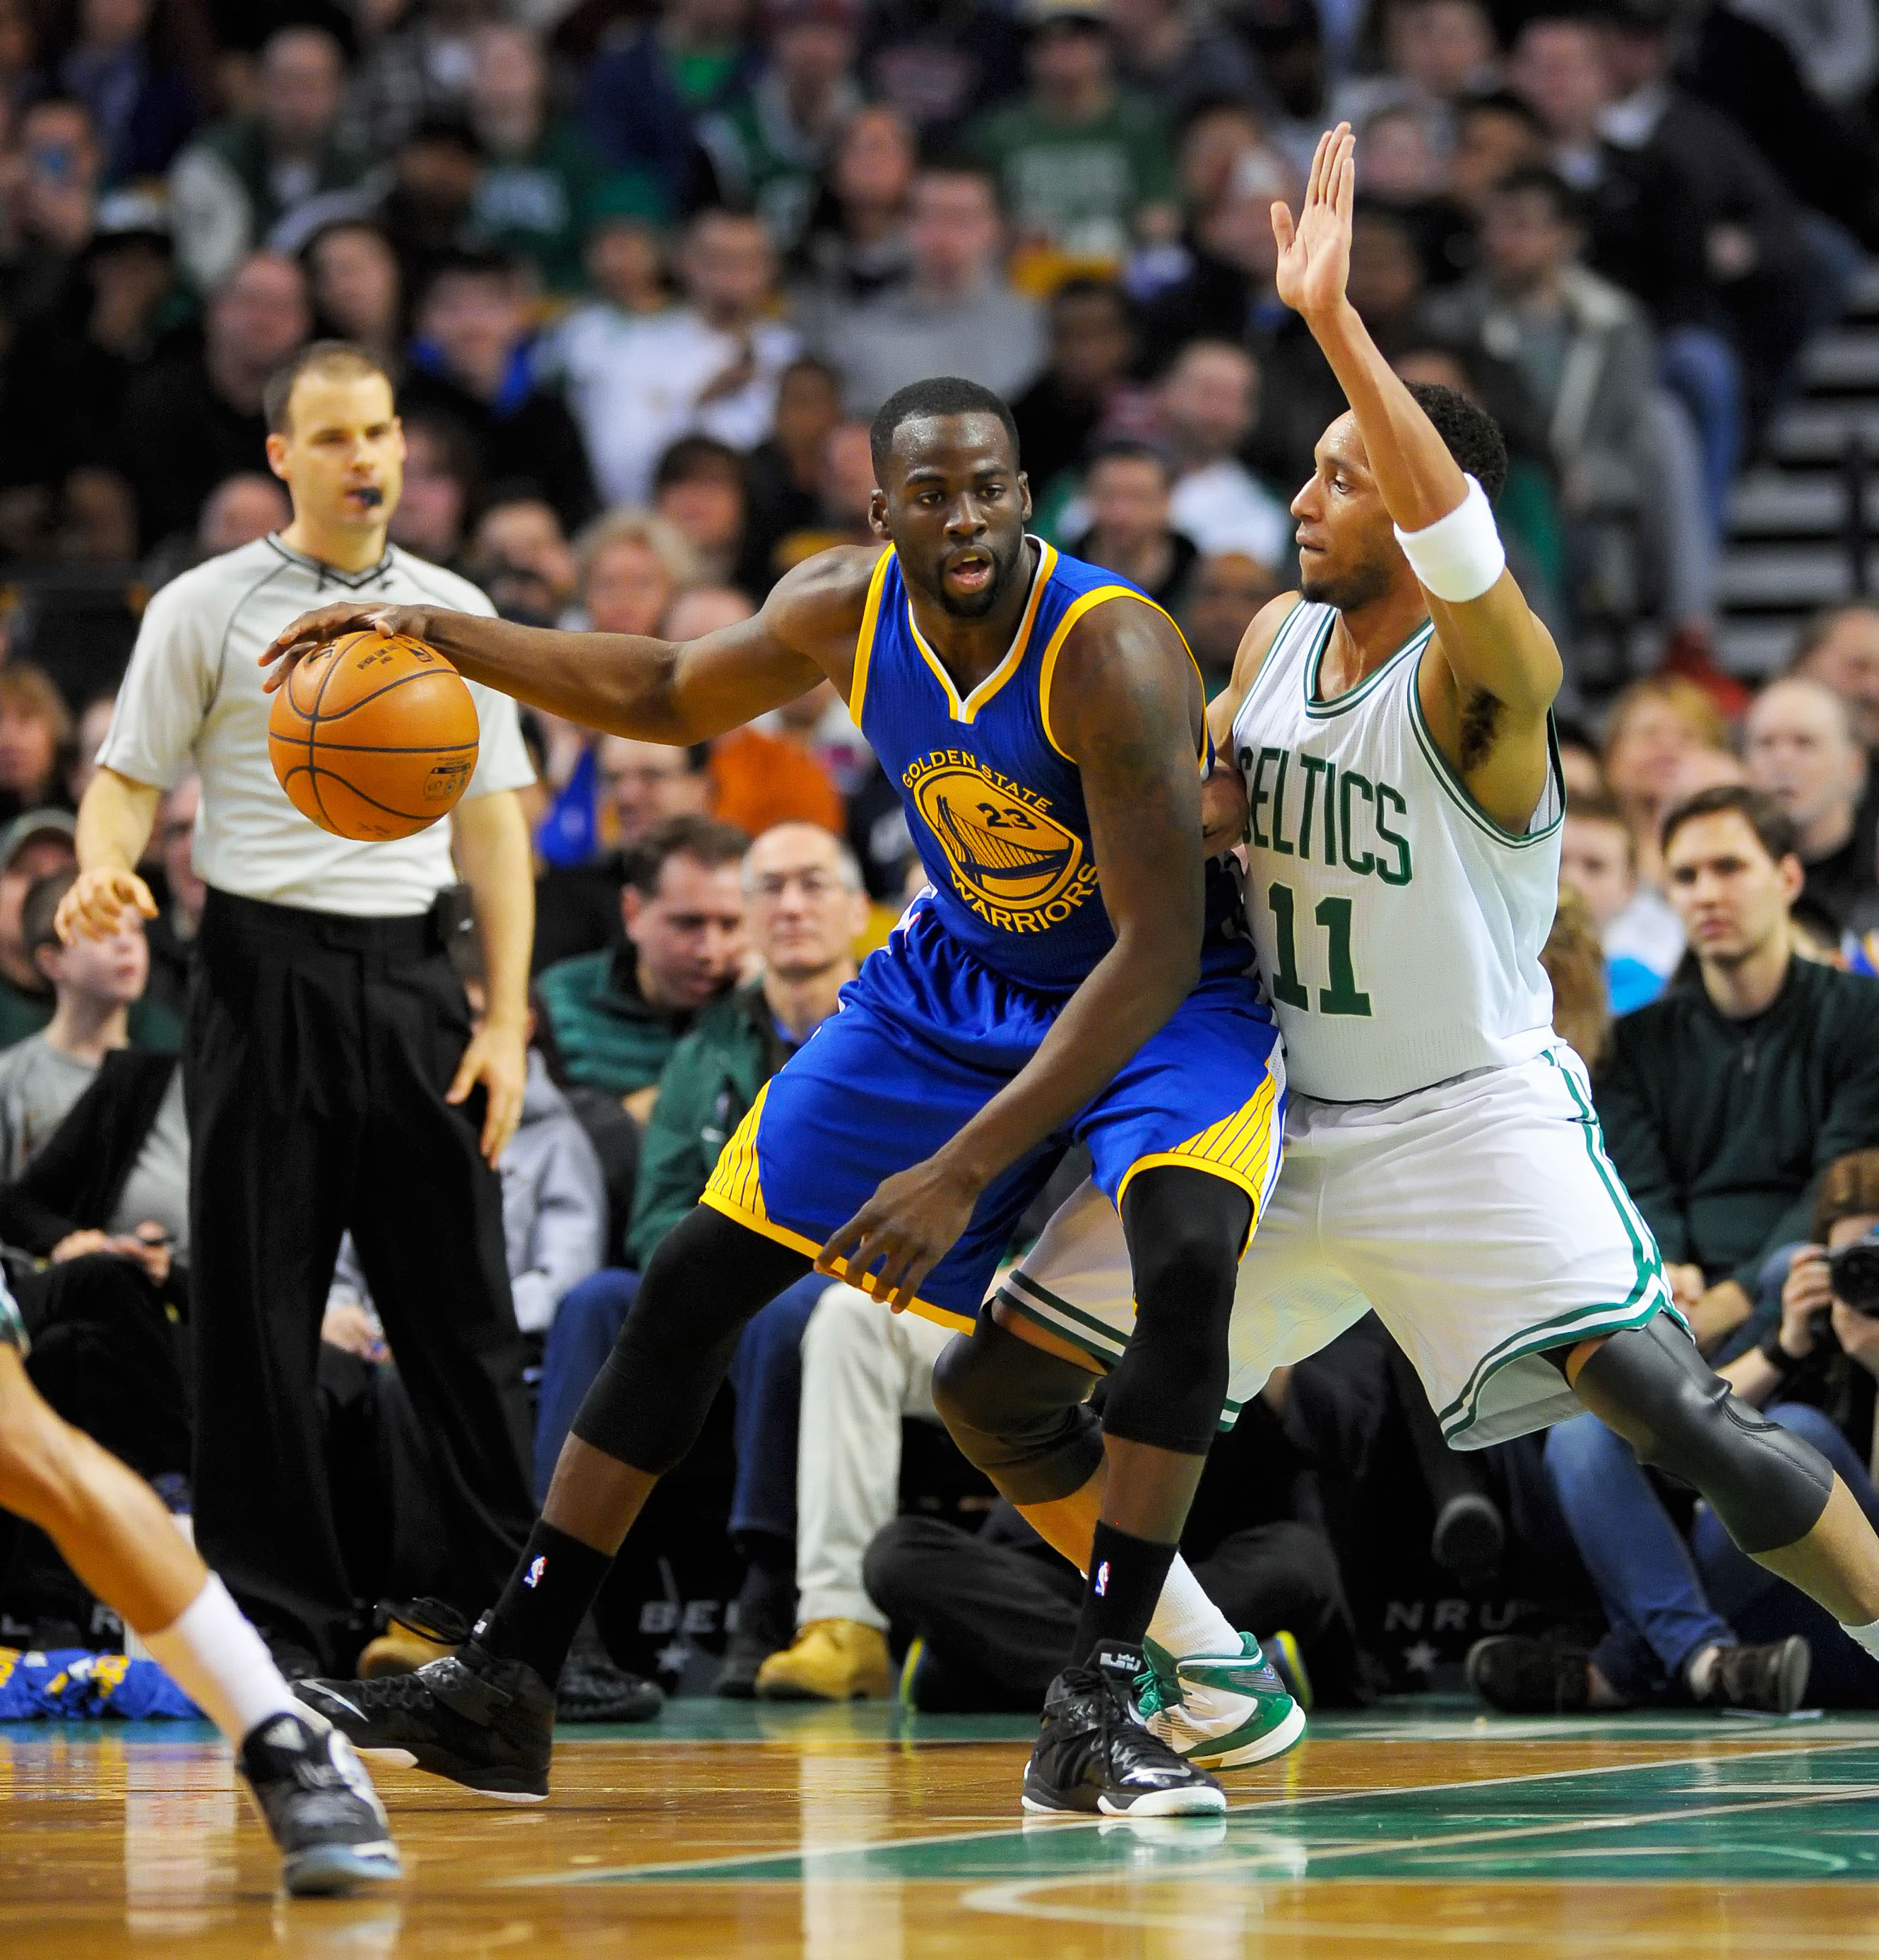 2013 NBA Playoffs: Warriors Vs. Nuggets